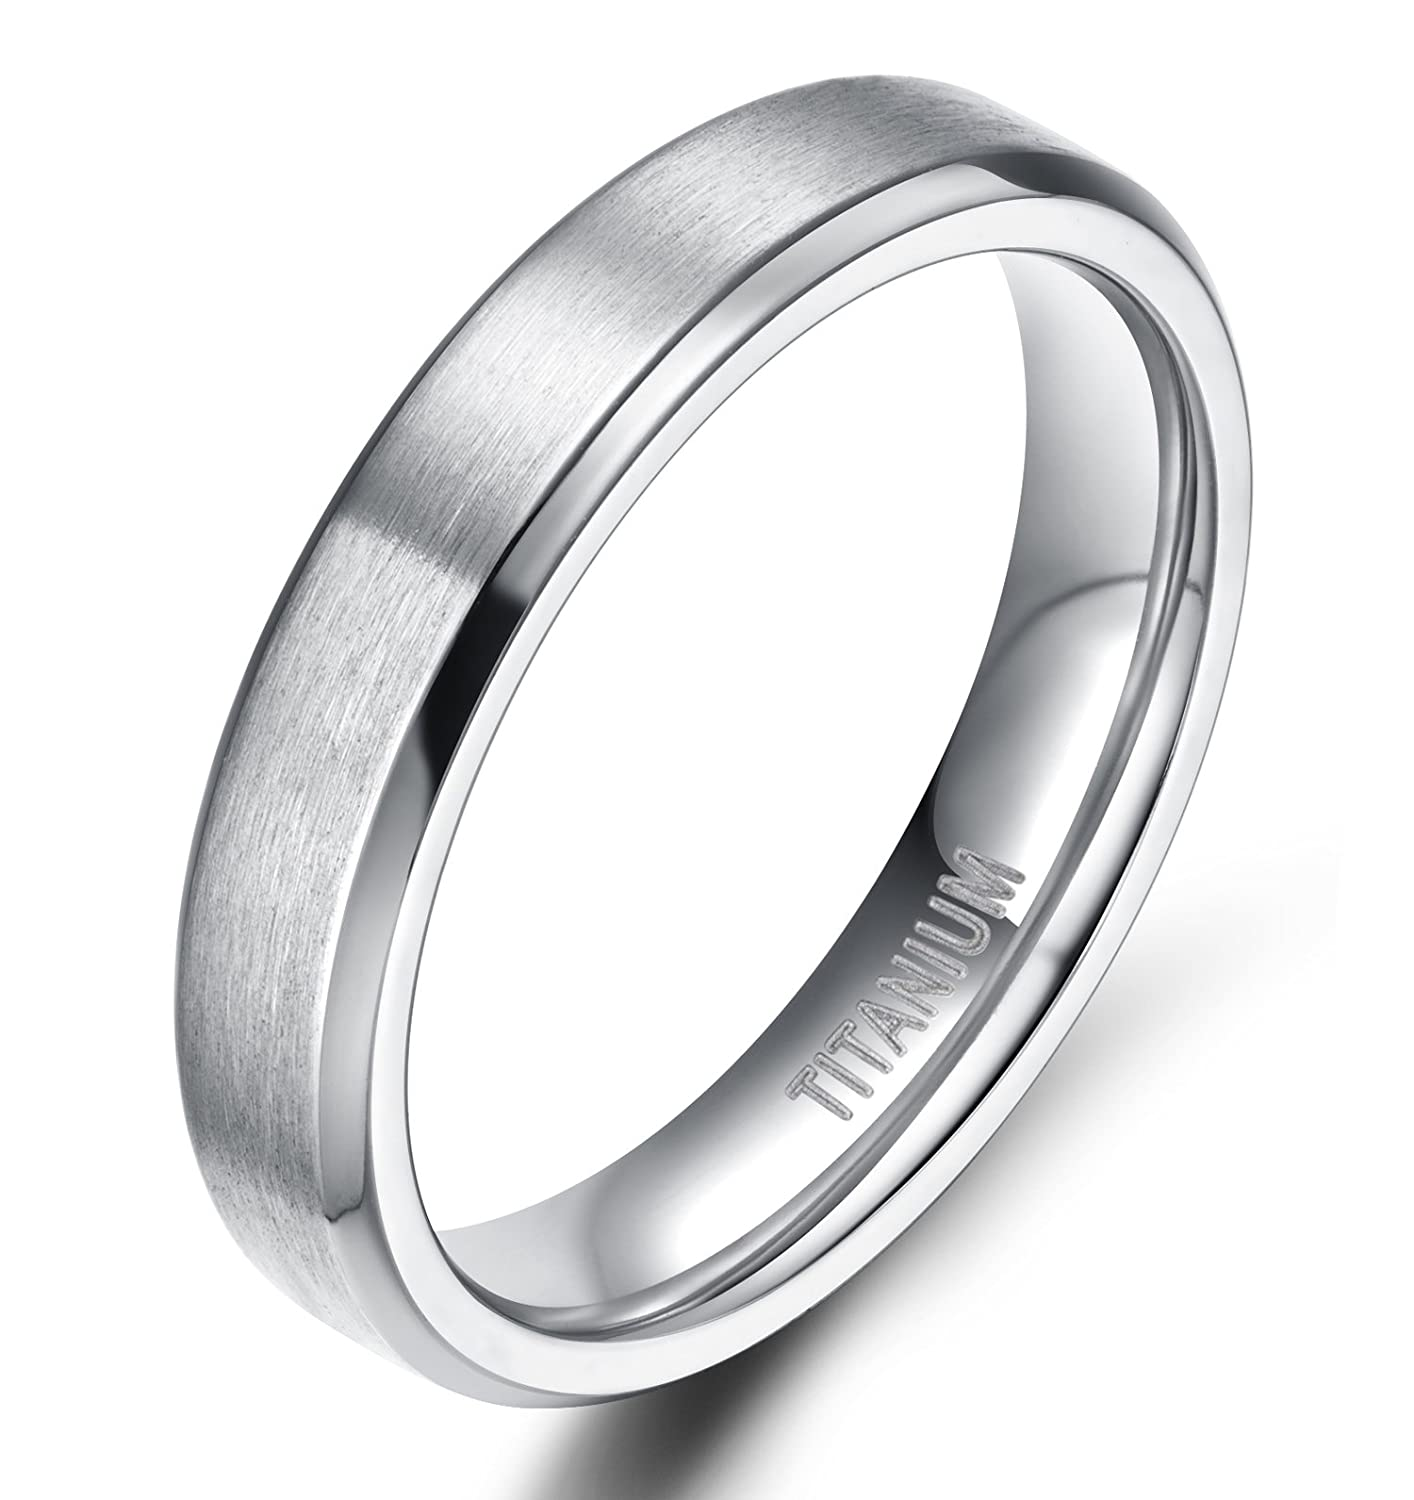 flat shiree platinum s odiz by wedding mens jewellery rings design ring products men ny